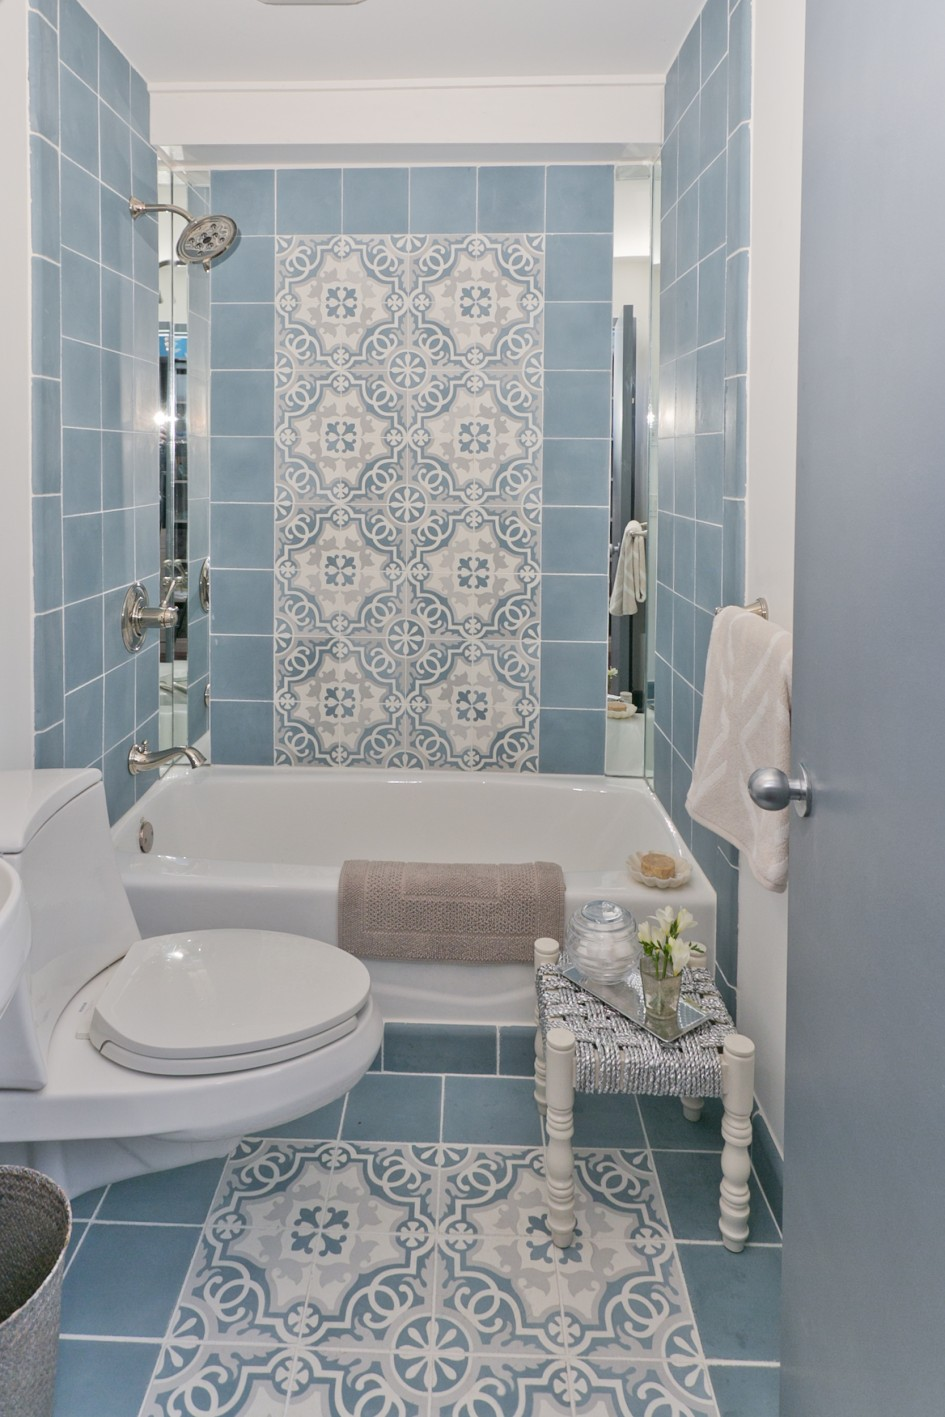 40 vintage blue bathroom tiles ideas and pictures - Decorative bathroom tiles ...